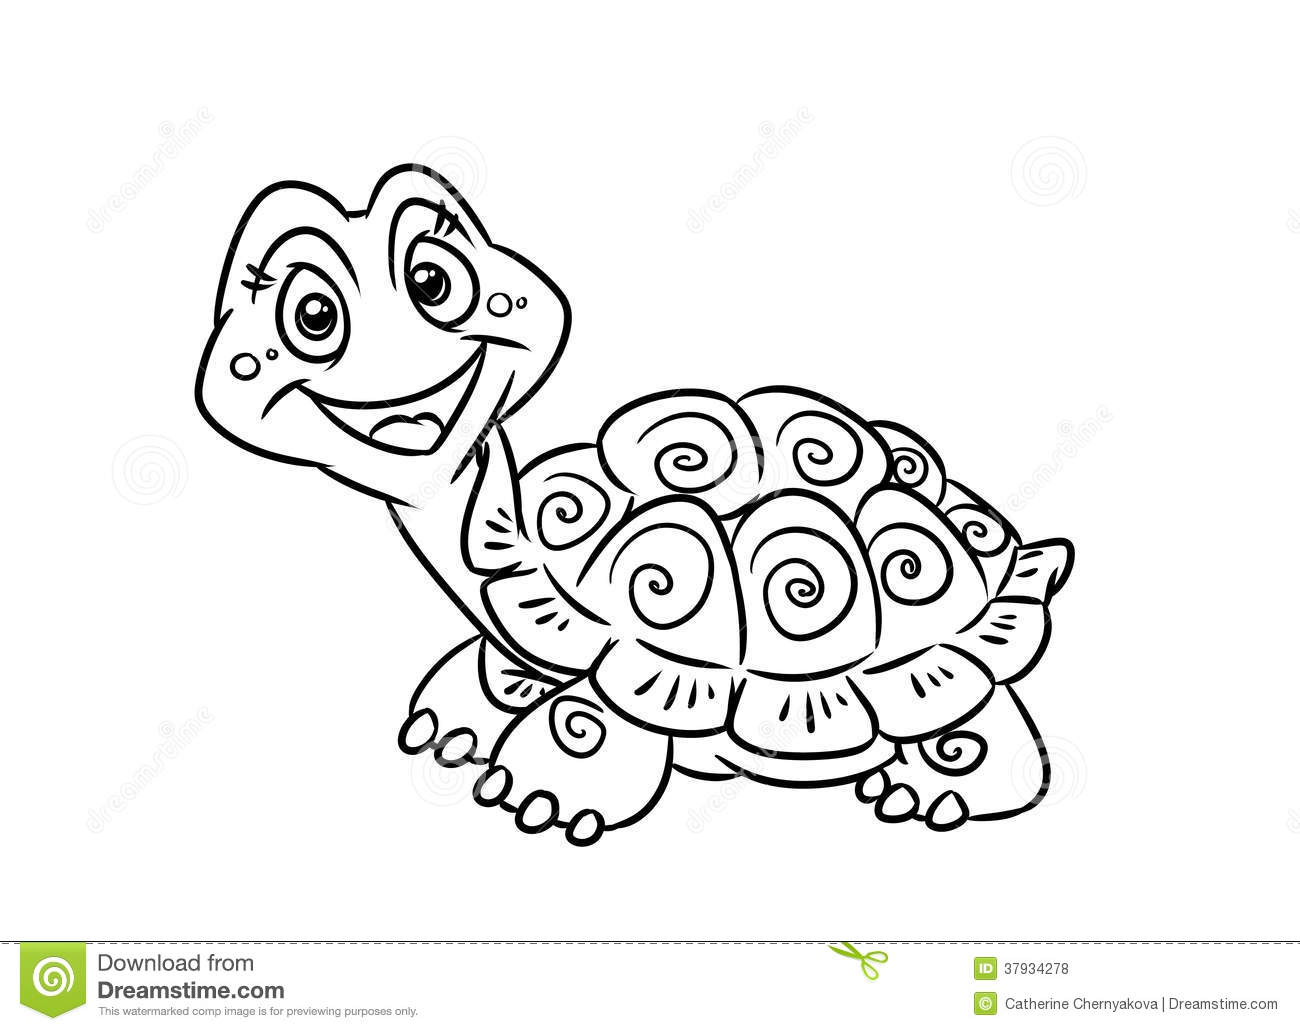 Turtle Fun Coloring Pages Royalty Free Stock Photos - Image: 37934278